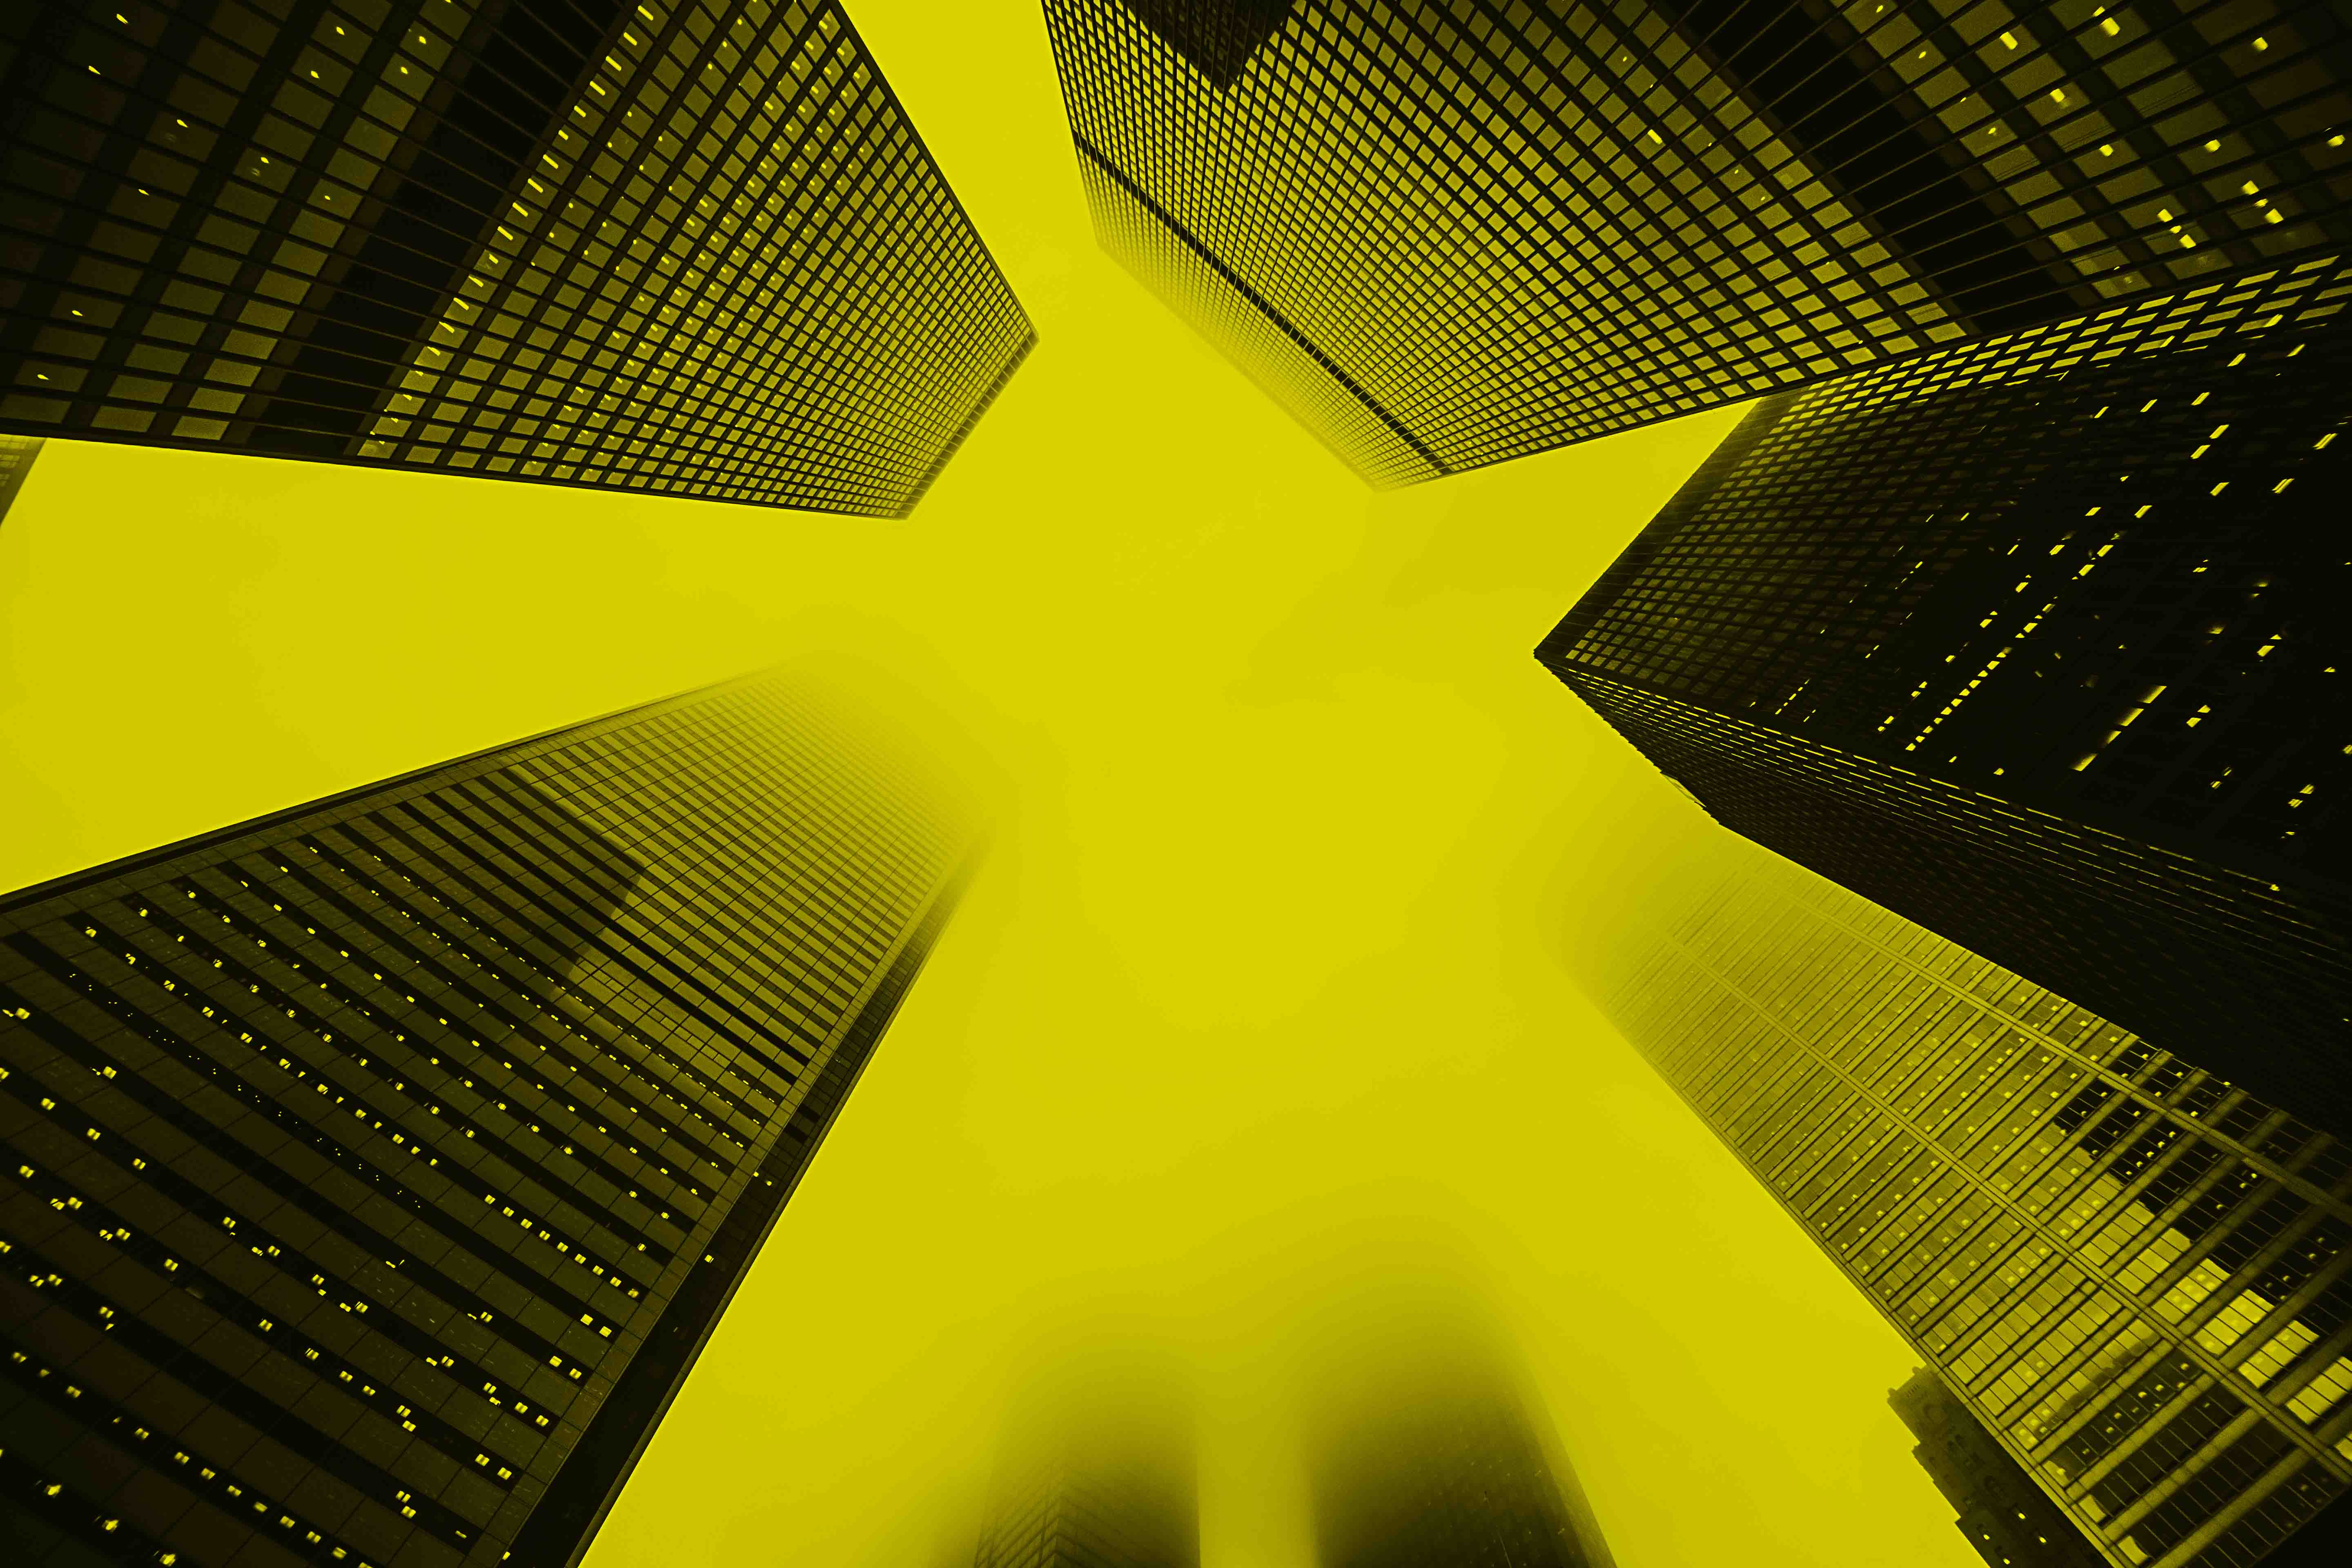 city_sky yellow.jpg